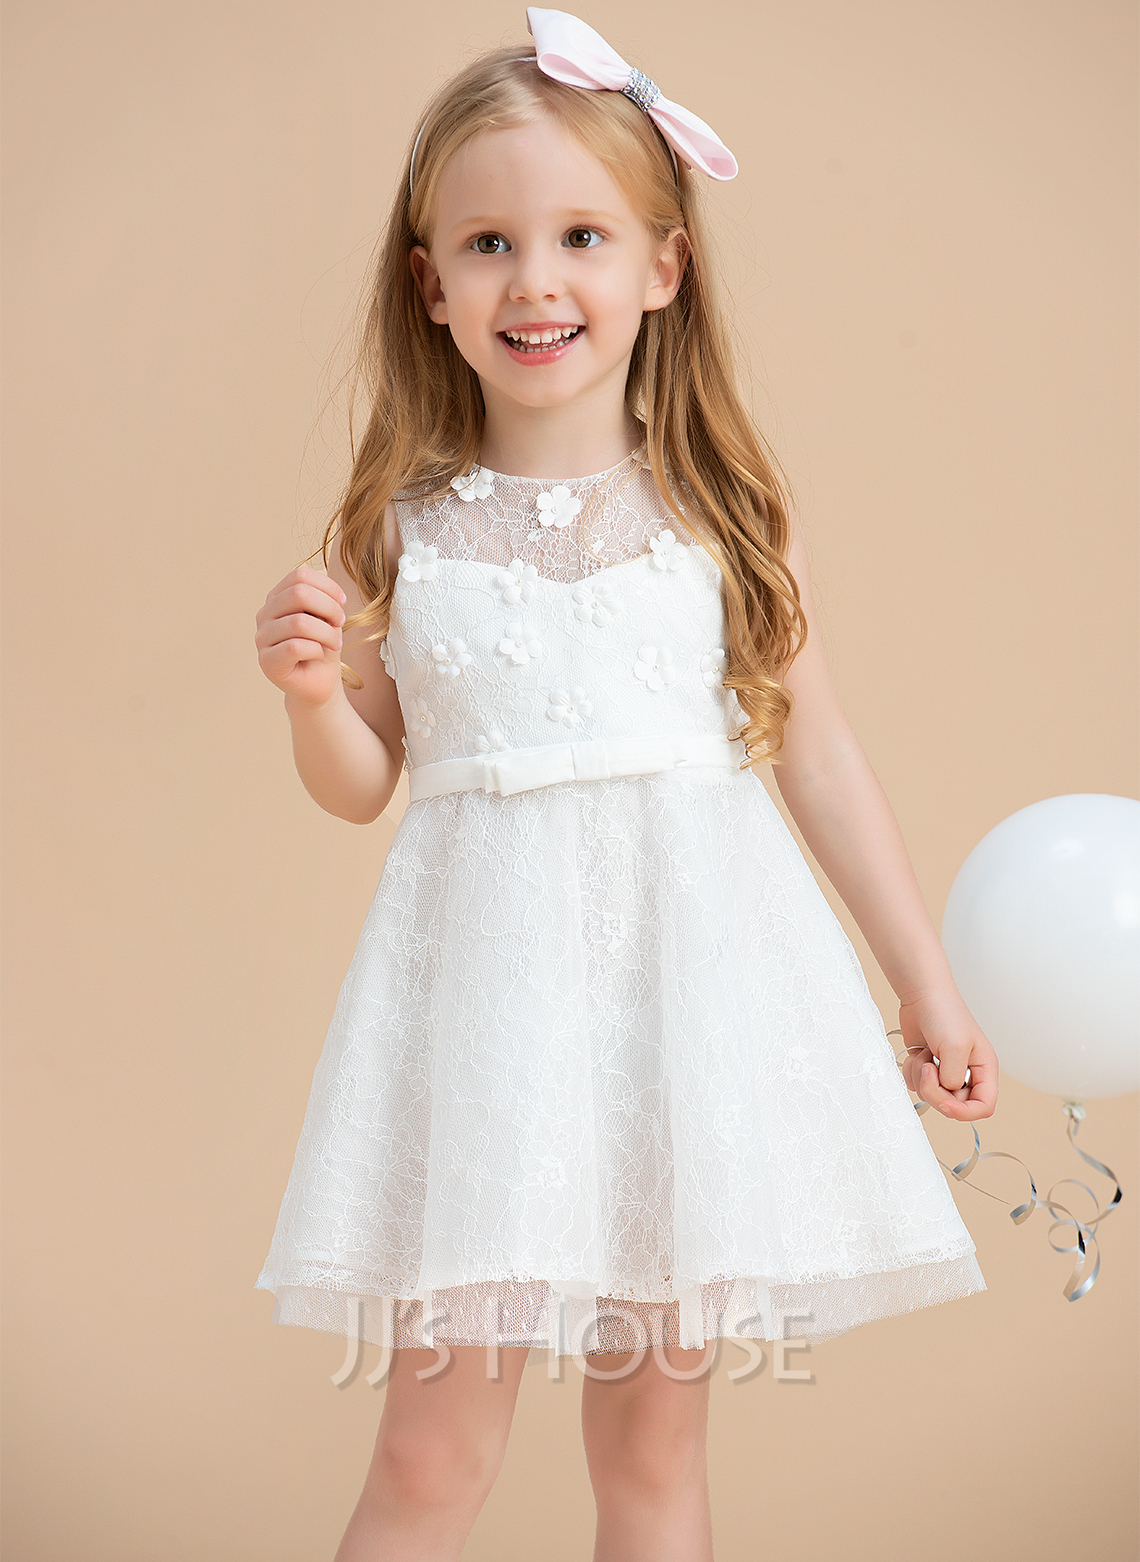 A-Line Knee-length Flower Girl Dress - Satin/Lace Sleeveless Scoop Neck With Beading/Flower(s)/Bow(s)